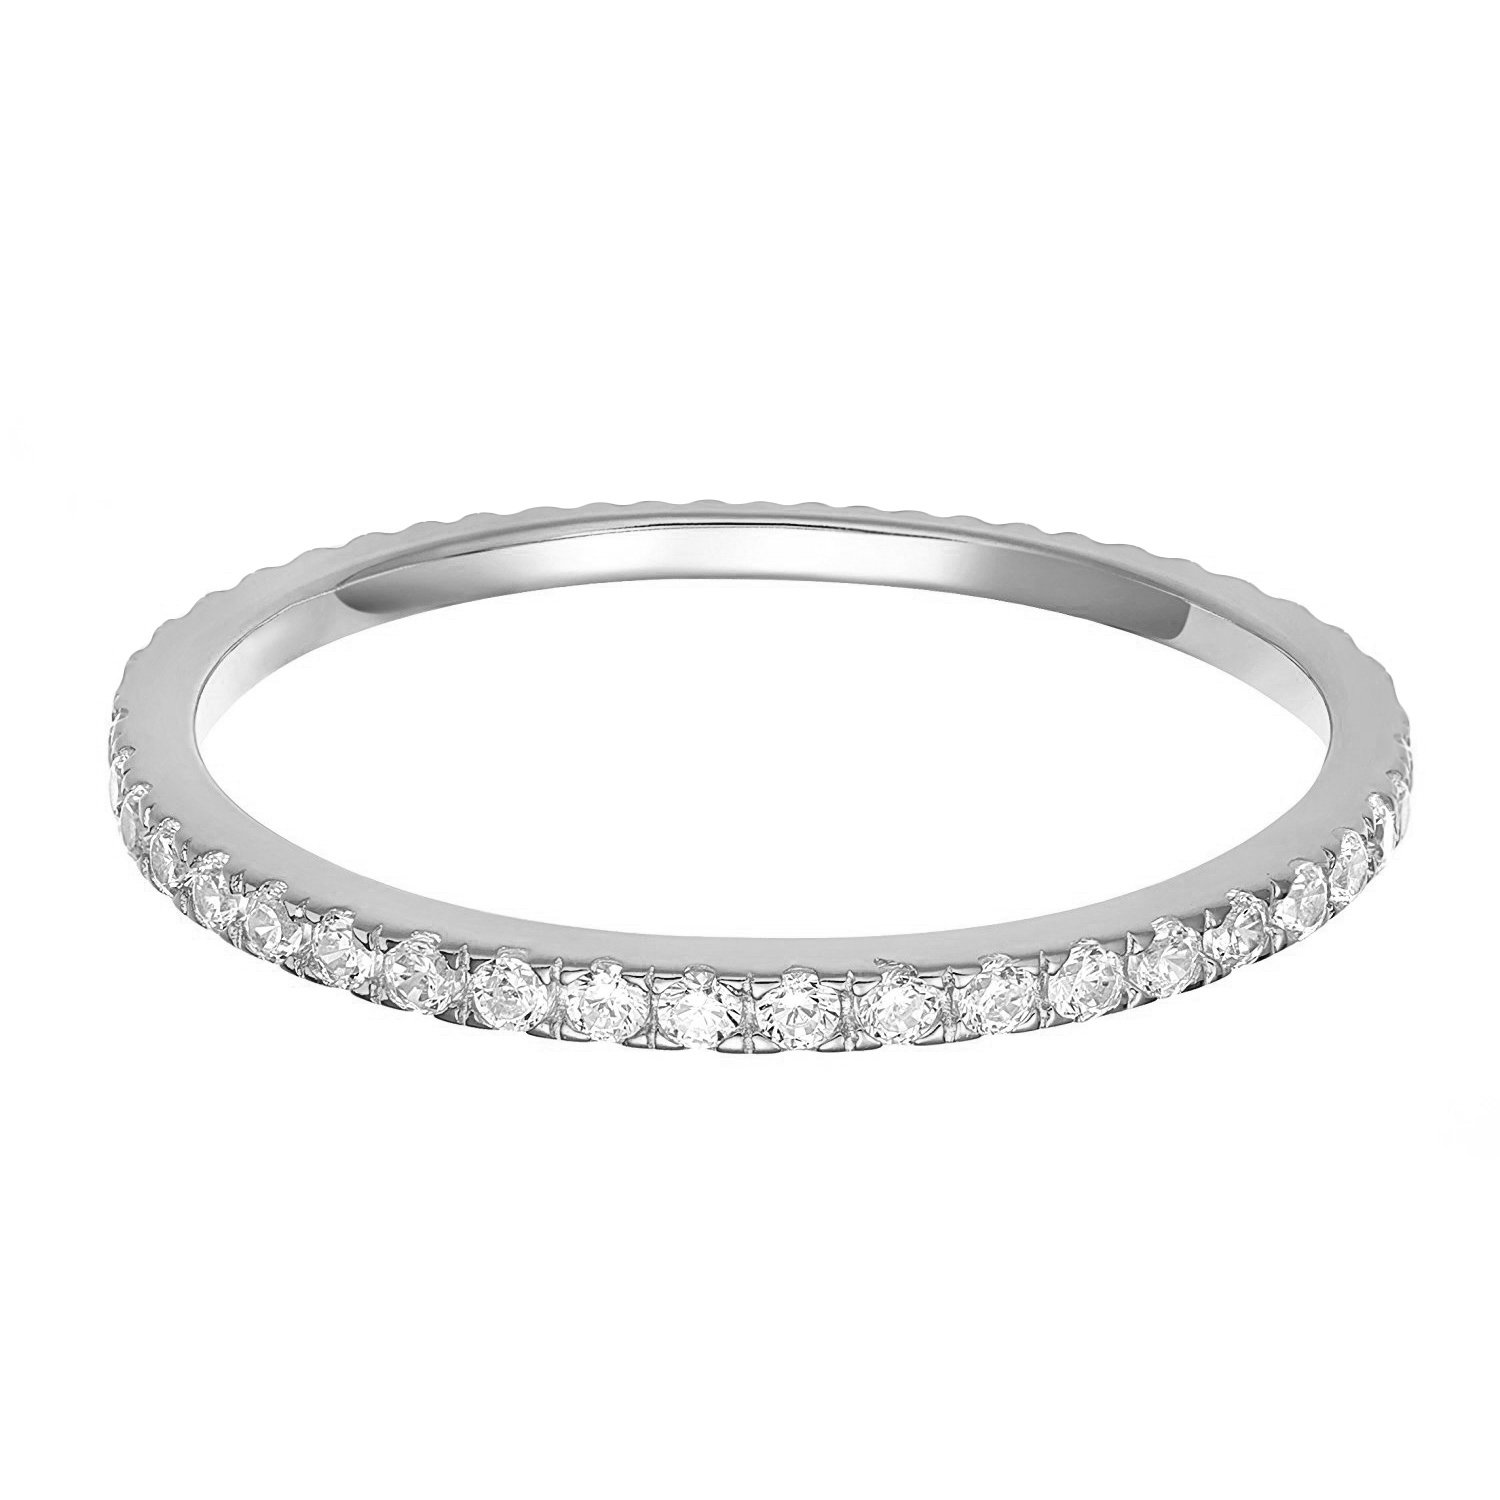 PAVOI AAAAA CZ Sterling Silver Cubic Zirconia Stackable Eternity Ring - Size 6